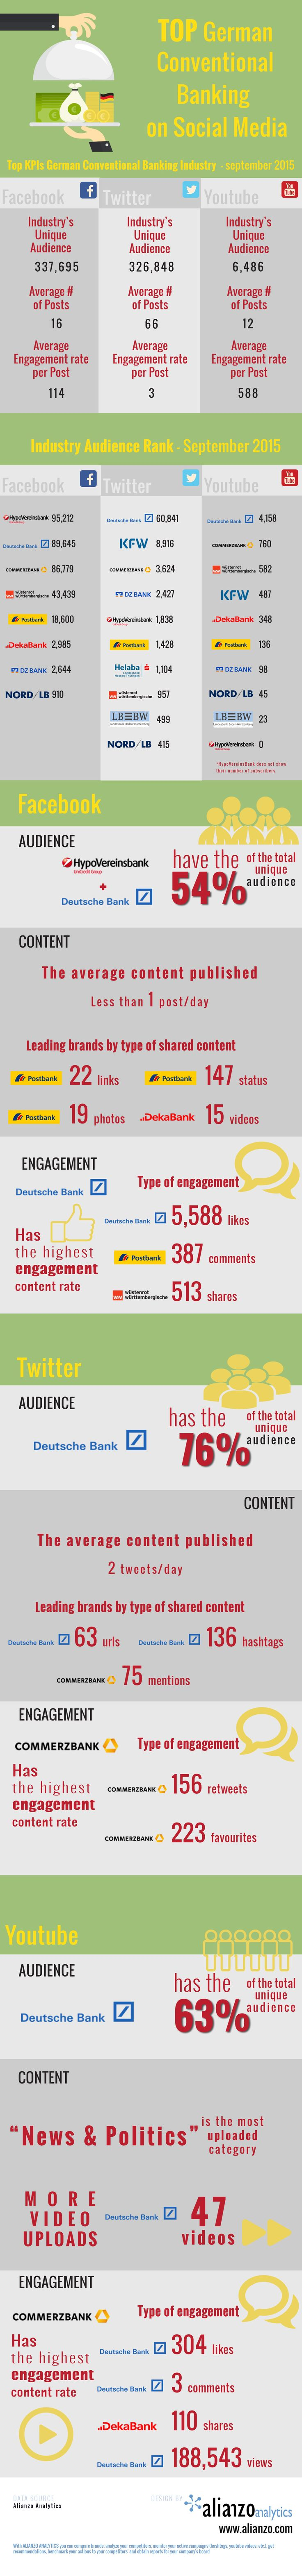 German banking report on social media: Commerzbank wins on Twitter and Youtube with its contents.